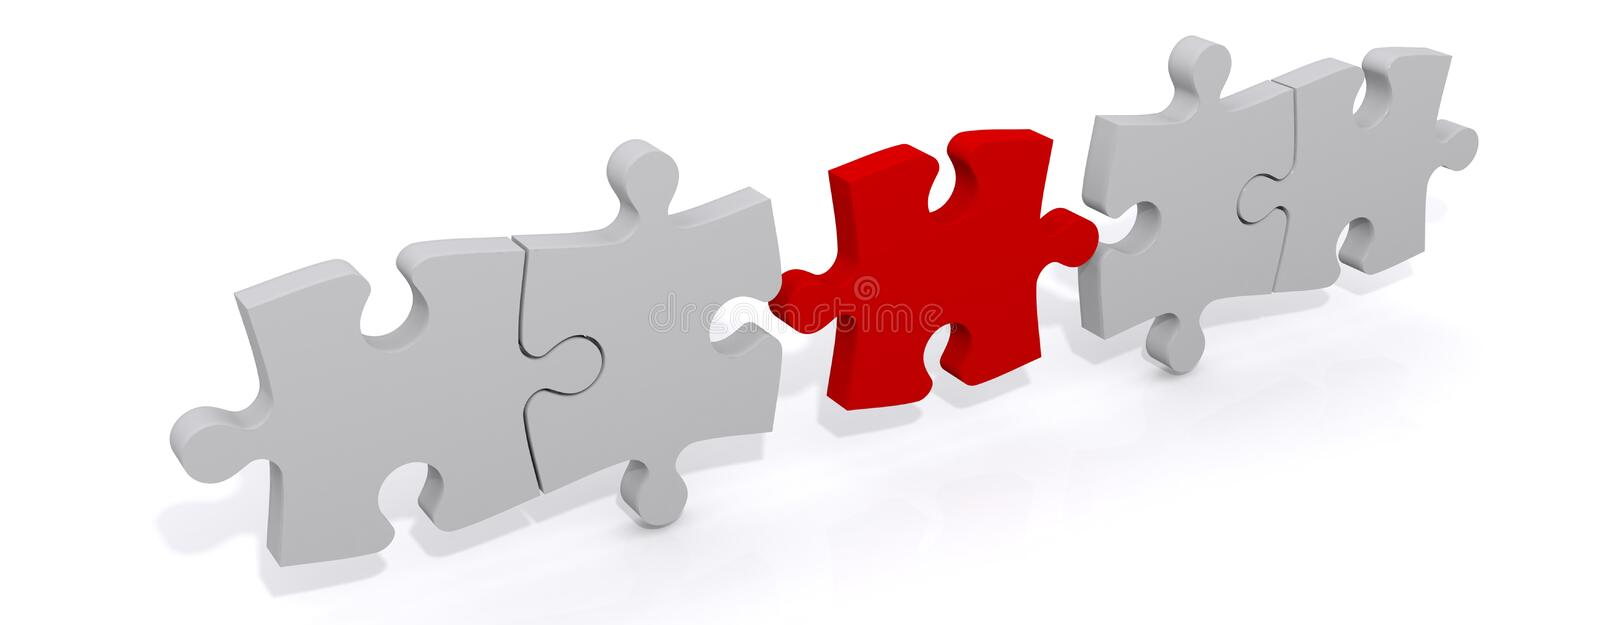 Red piece completing jigsaw. 3d illustration of a red piece completing jigsaw row, white background vector illustration